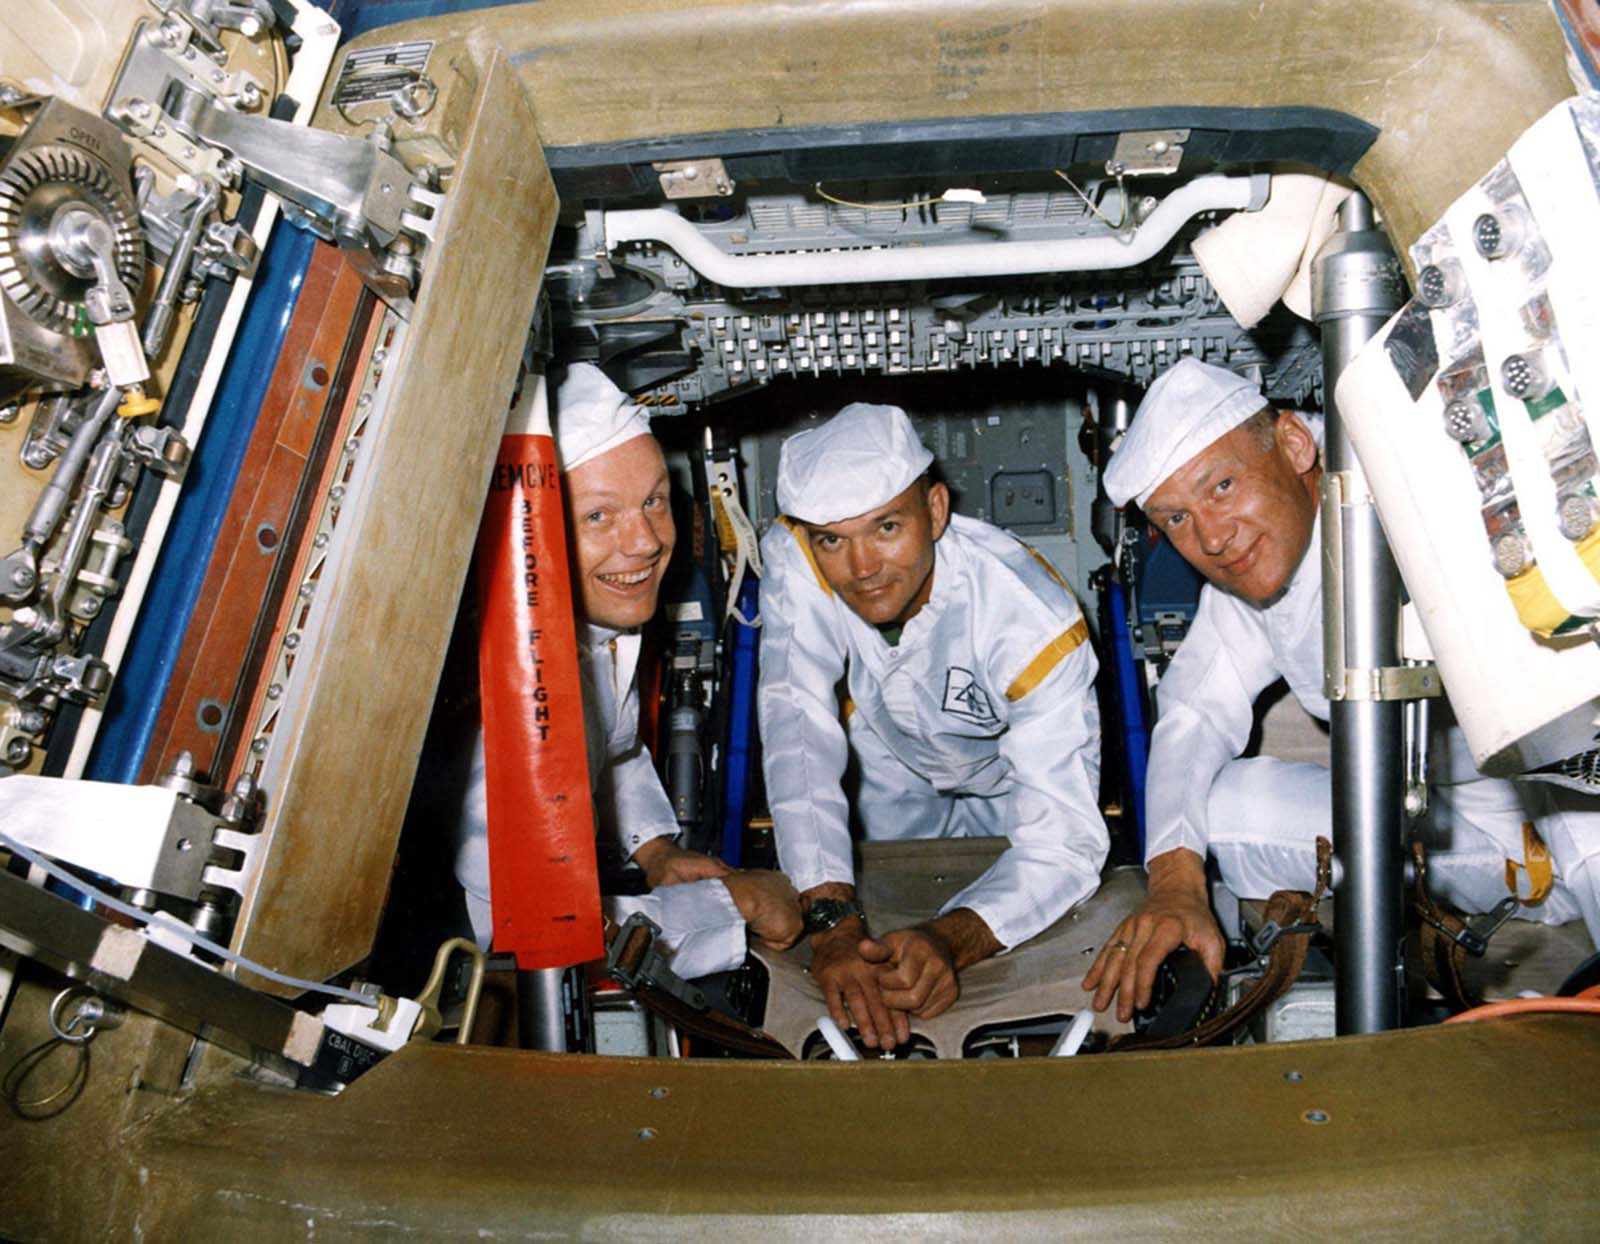 Apollo 11 crew members pose for a photo during a walk-through egress test on June 10, 1969.